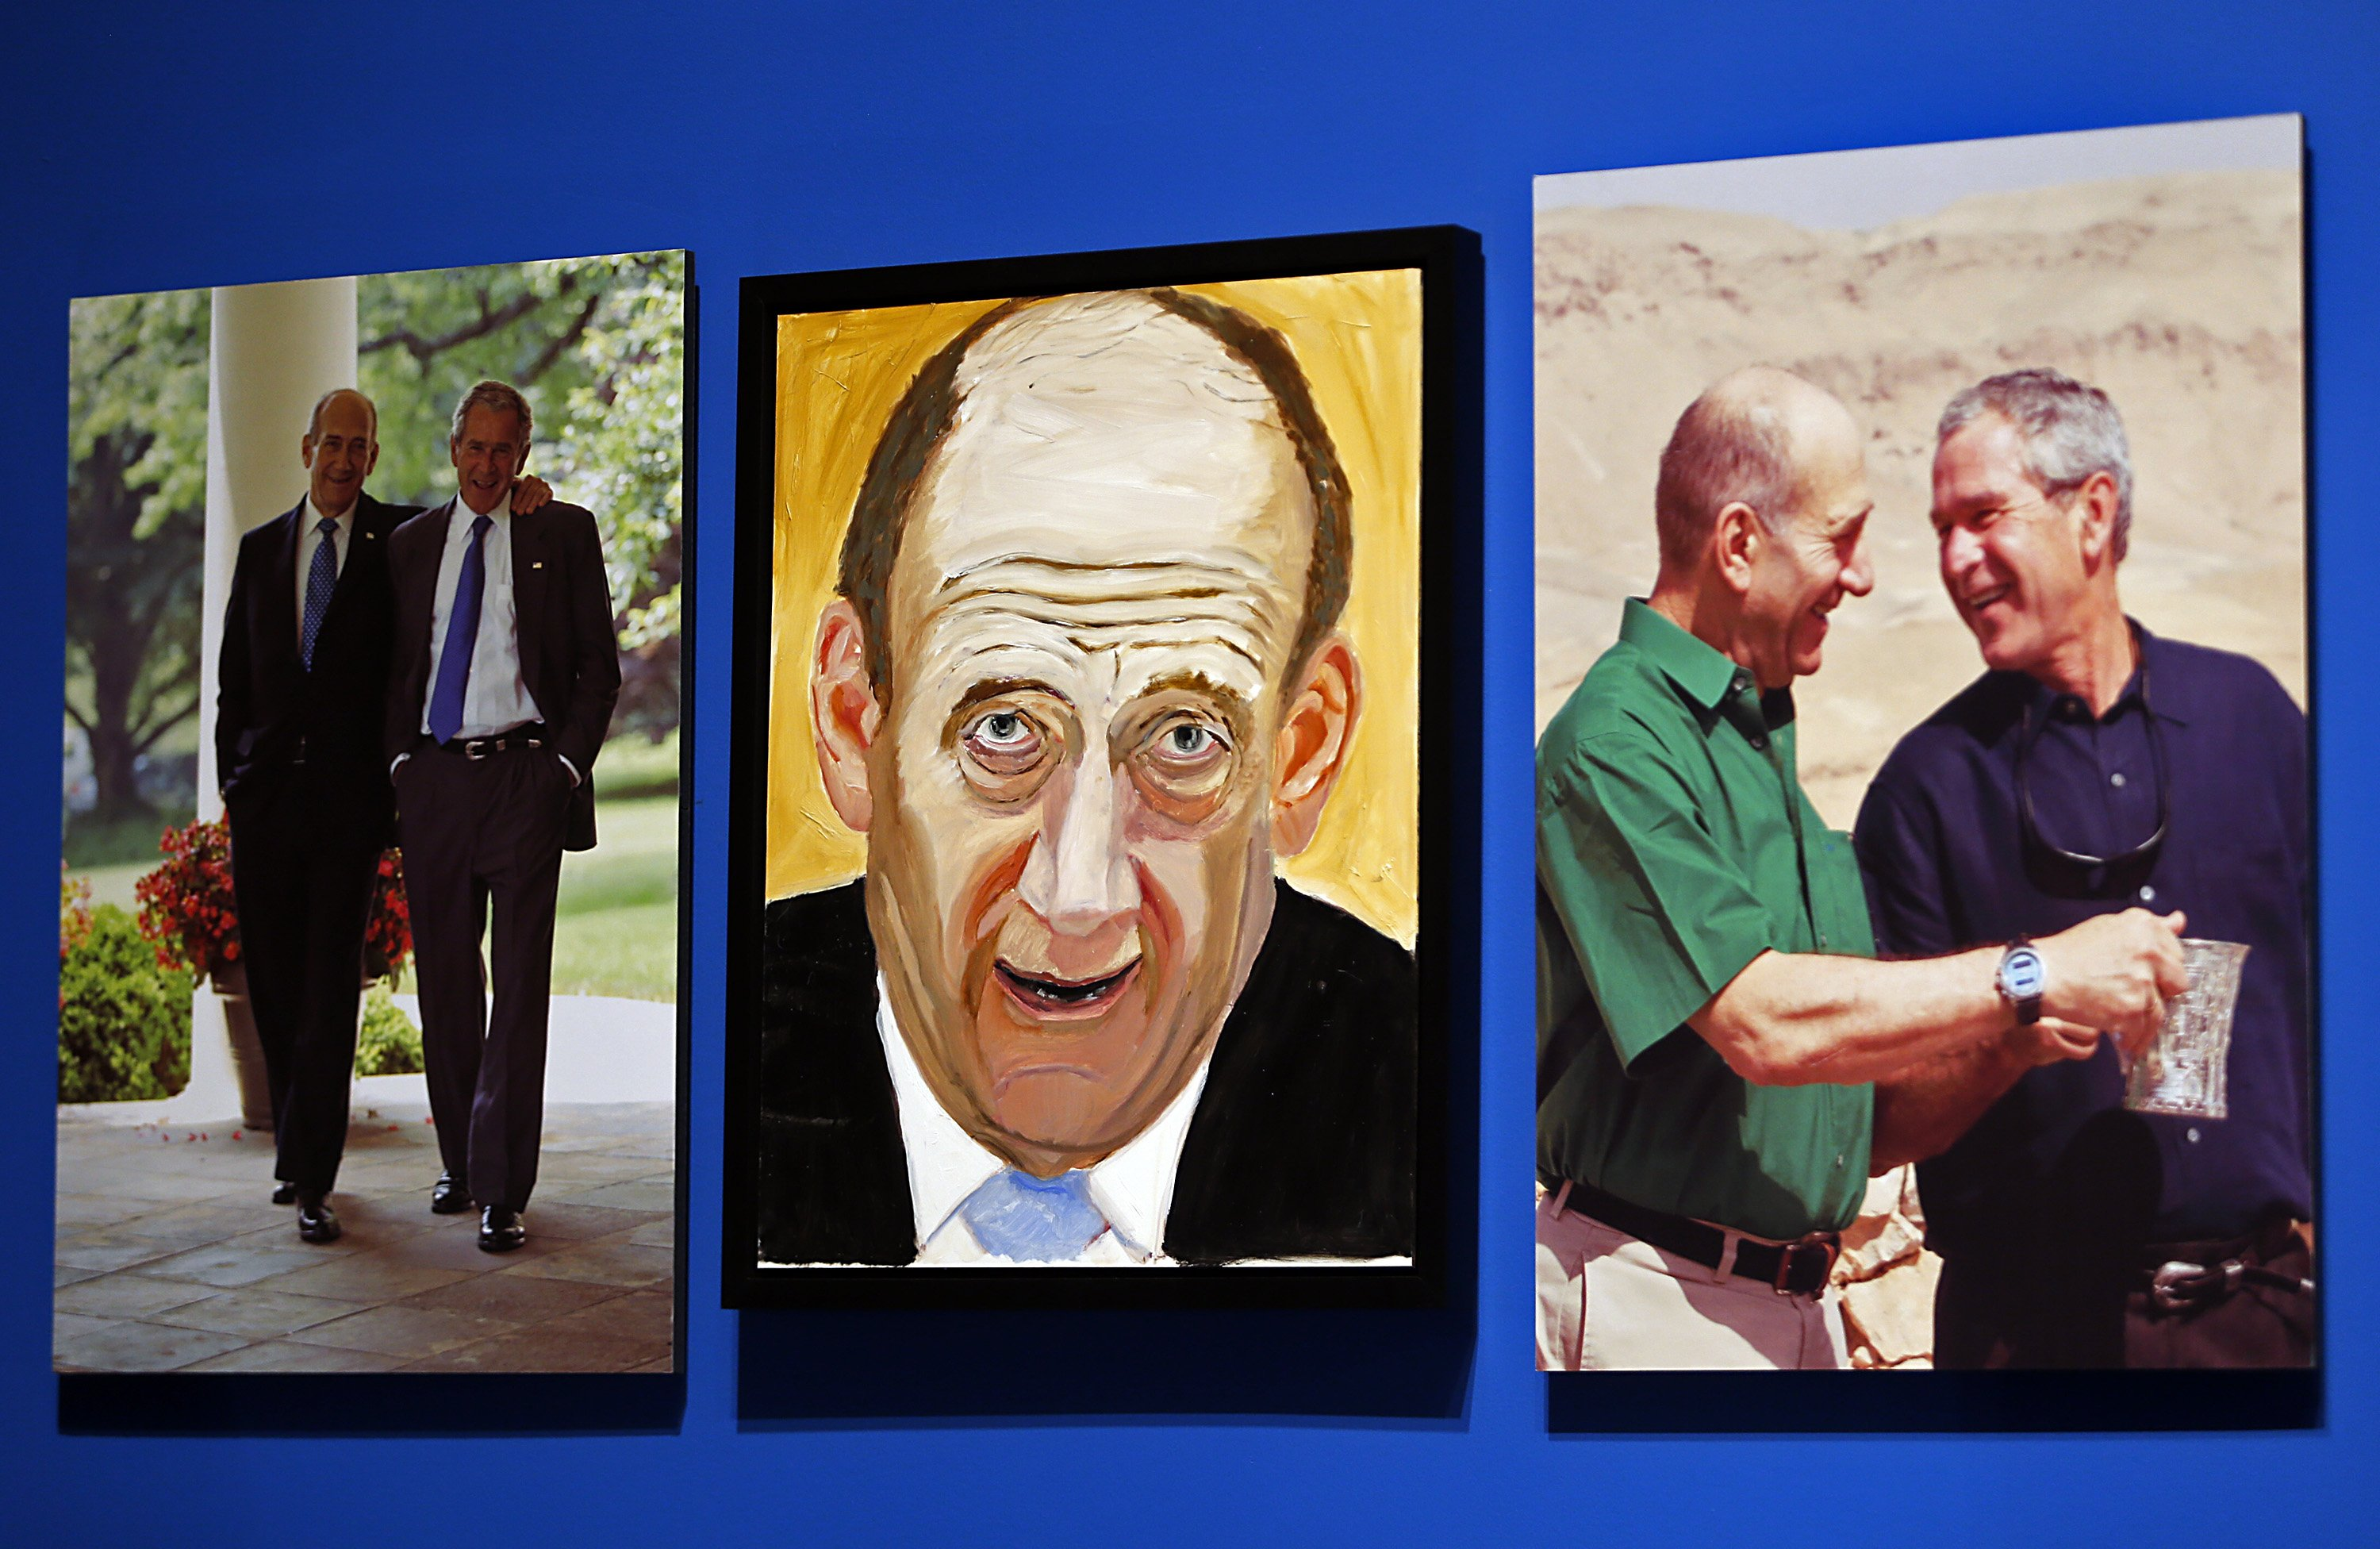 A portrait of Ehud Olmert, Prime Minister of Israel, painted by former president George W. Bush.